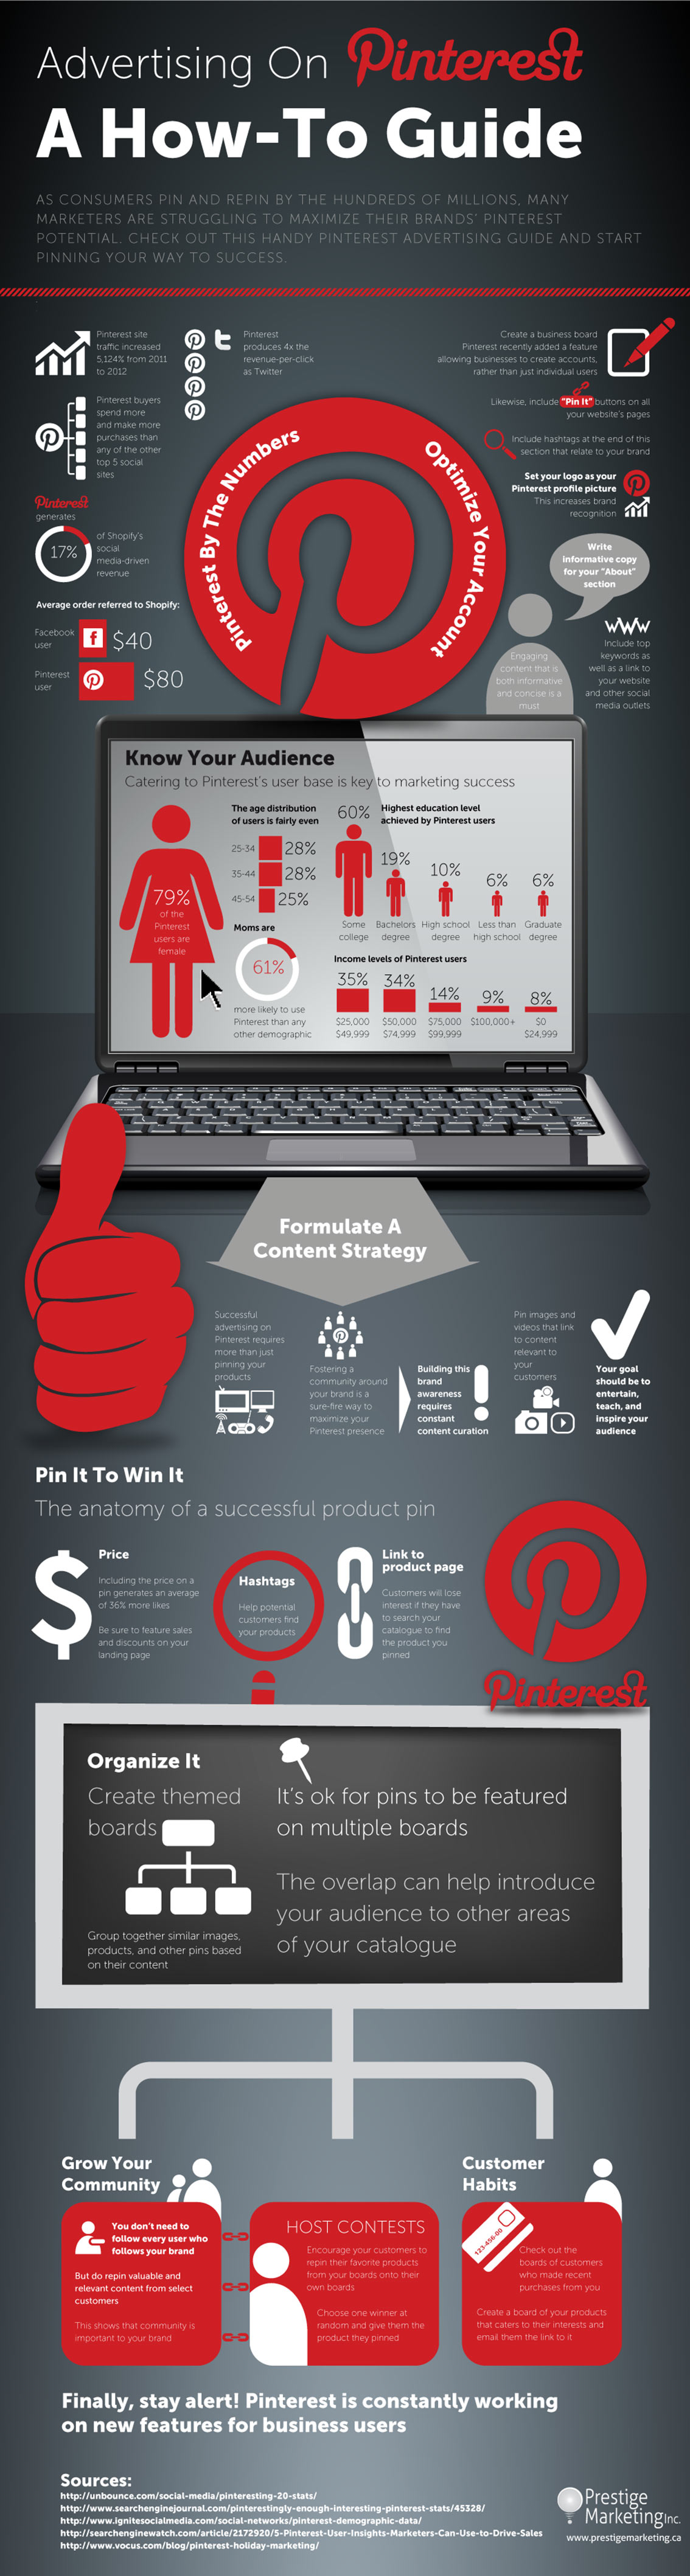 How to Advertise Your Business on Pinterest Infographic